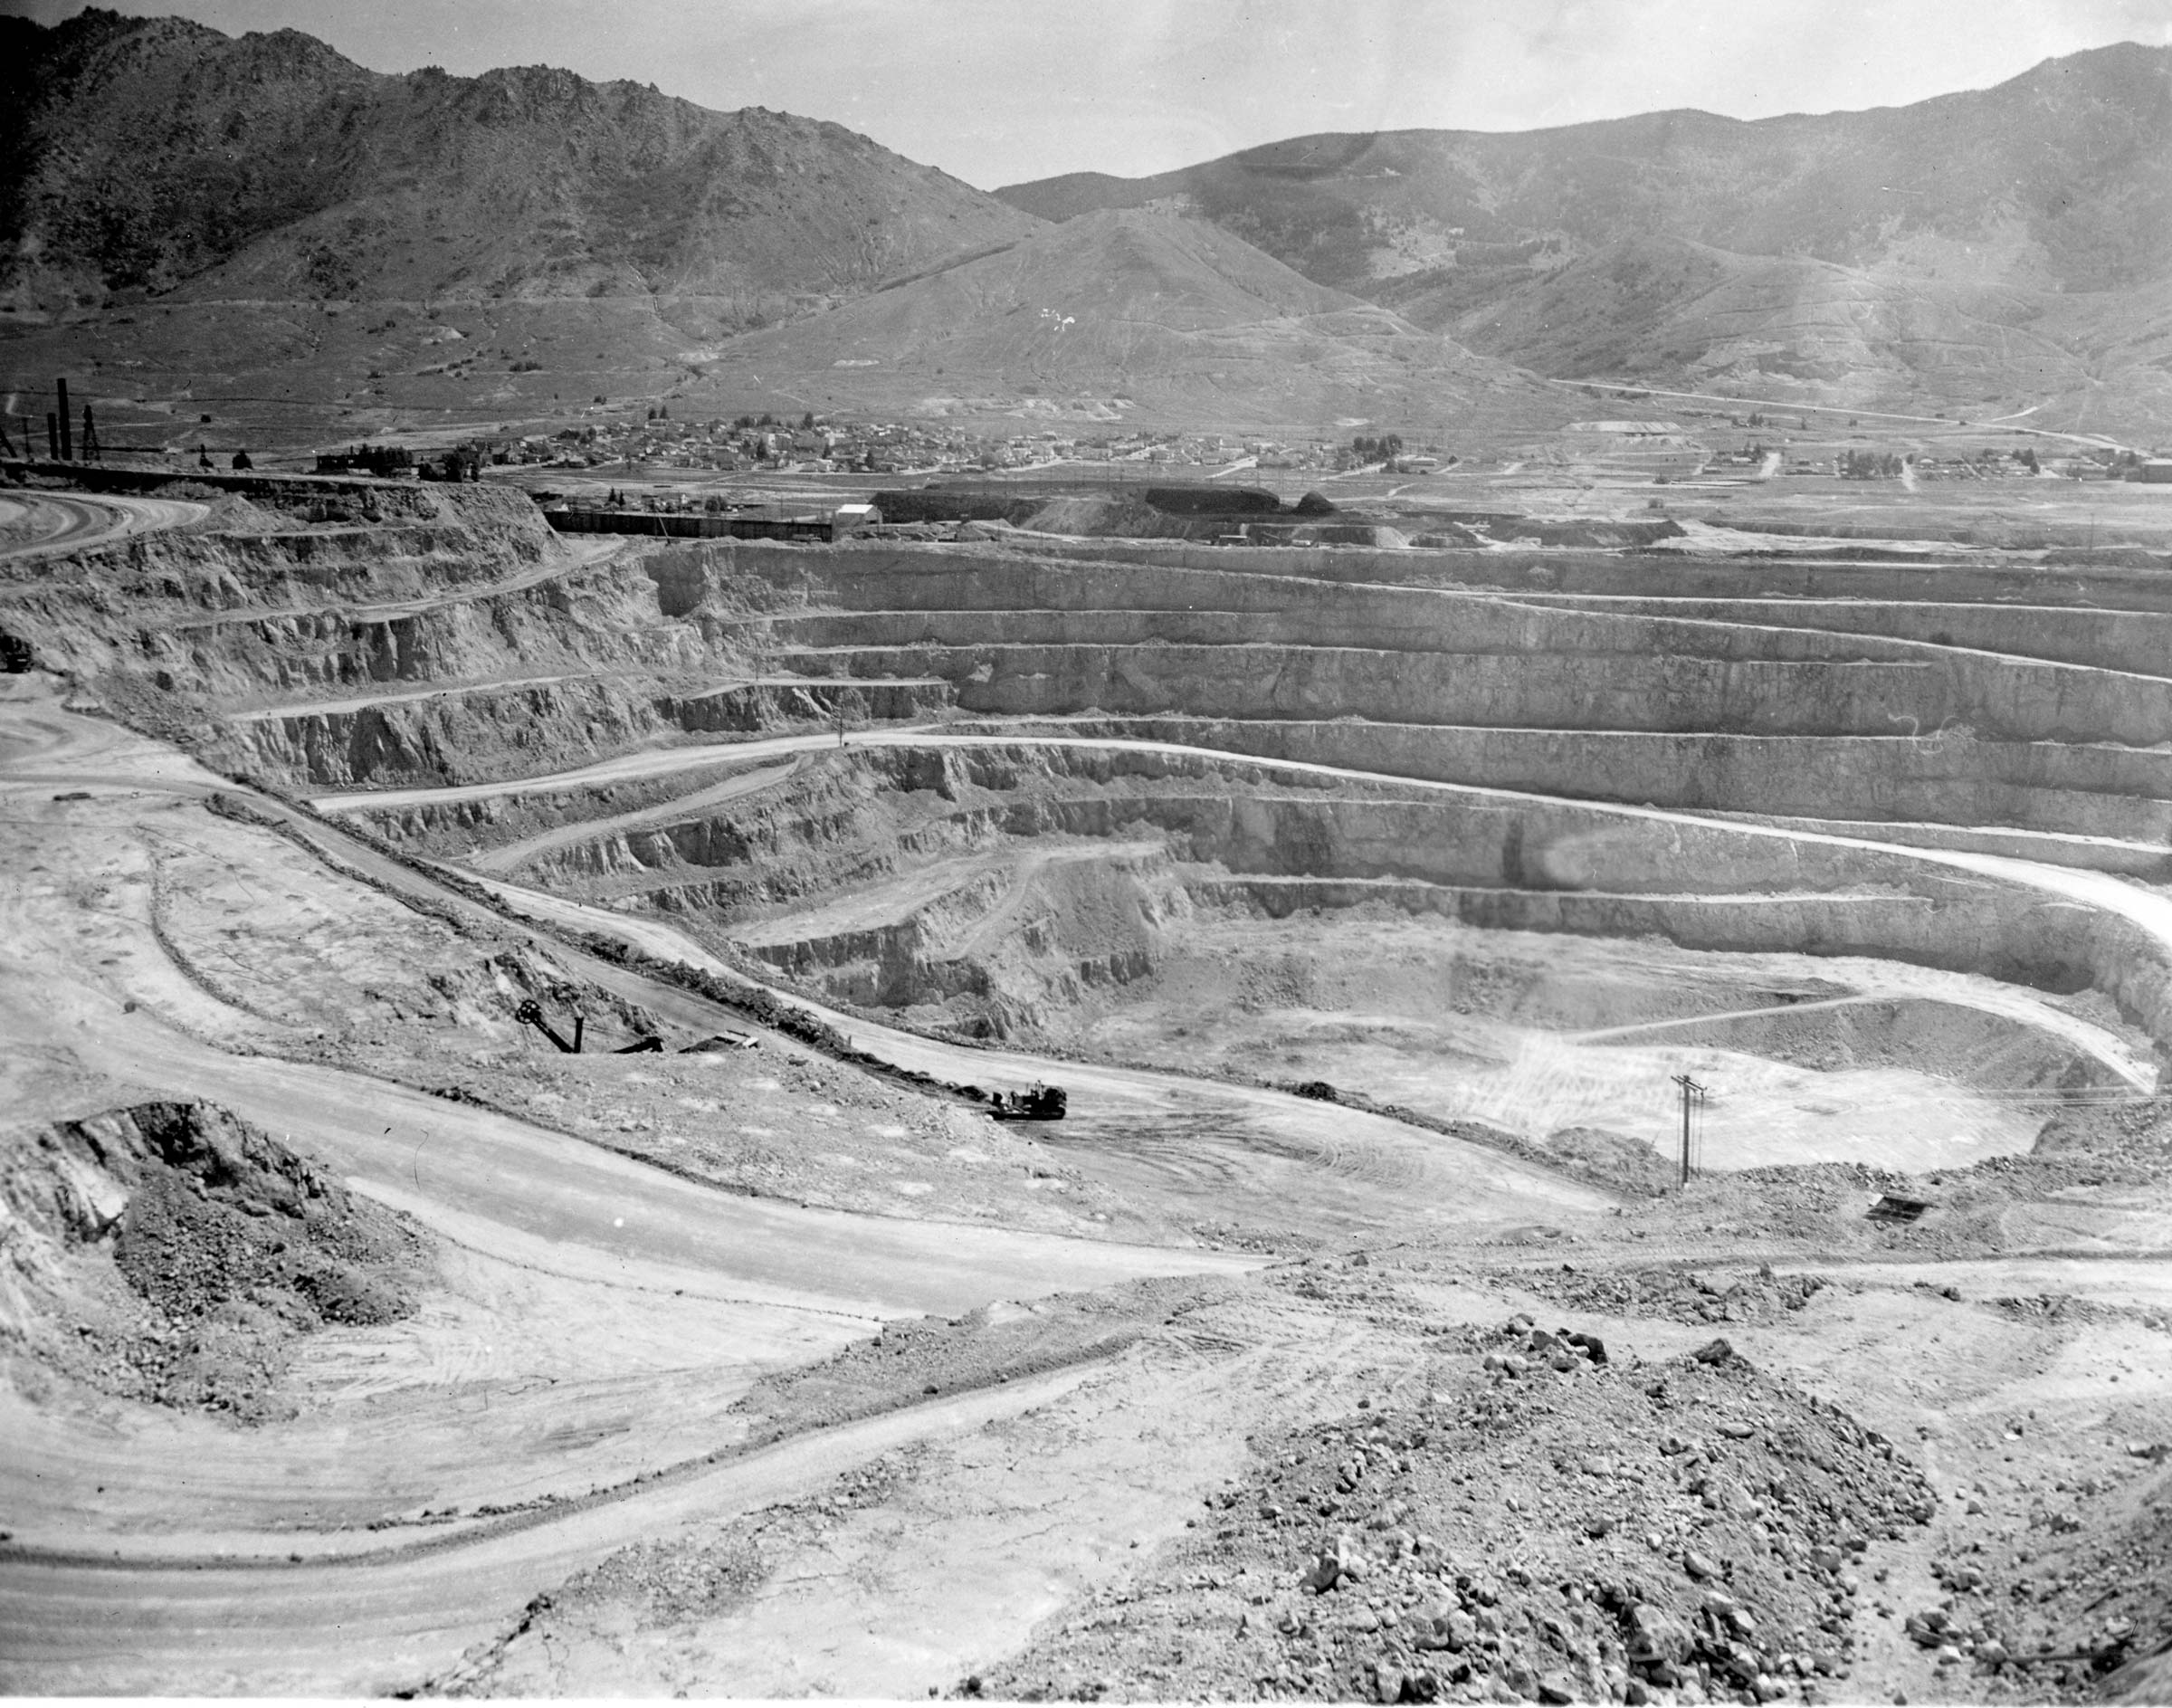 Berkeley Pit 1960s. Photo courtesy of the Butte-Silver Bow Public Archives.